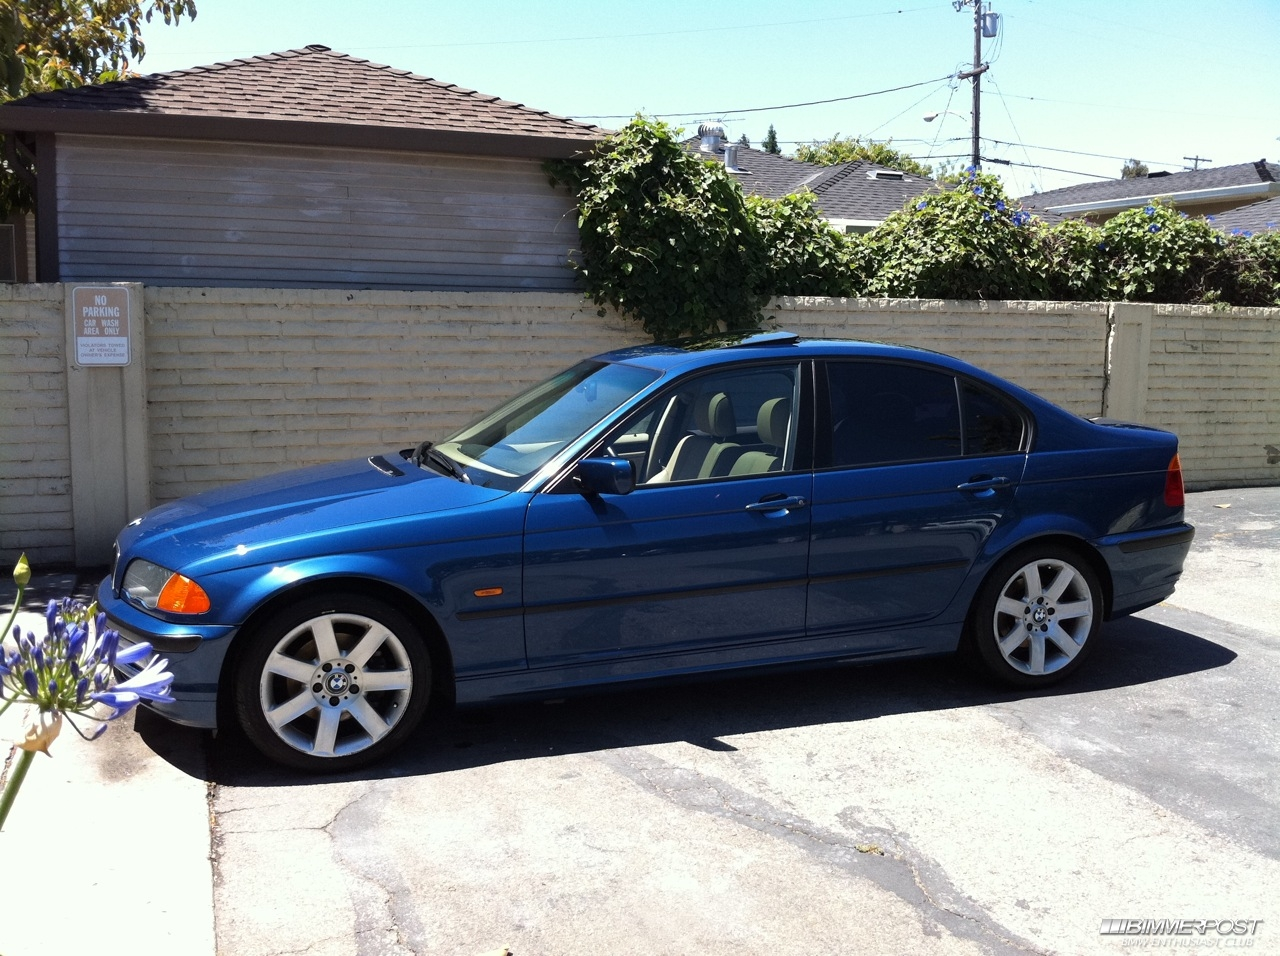 Zmm Omg S 2001 Bmw 325i Bimmerpost Garage